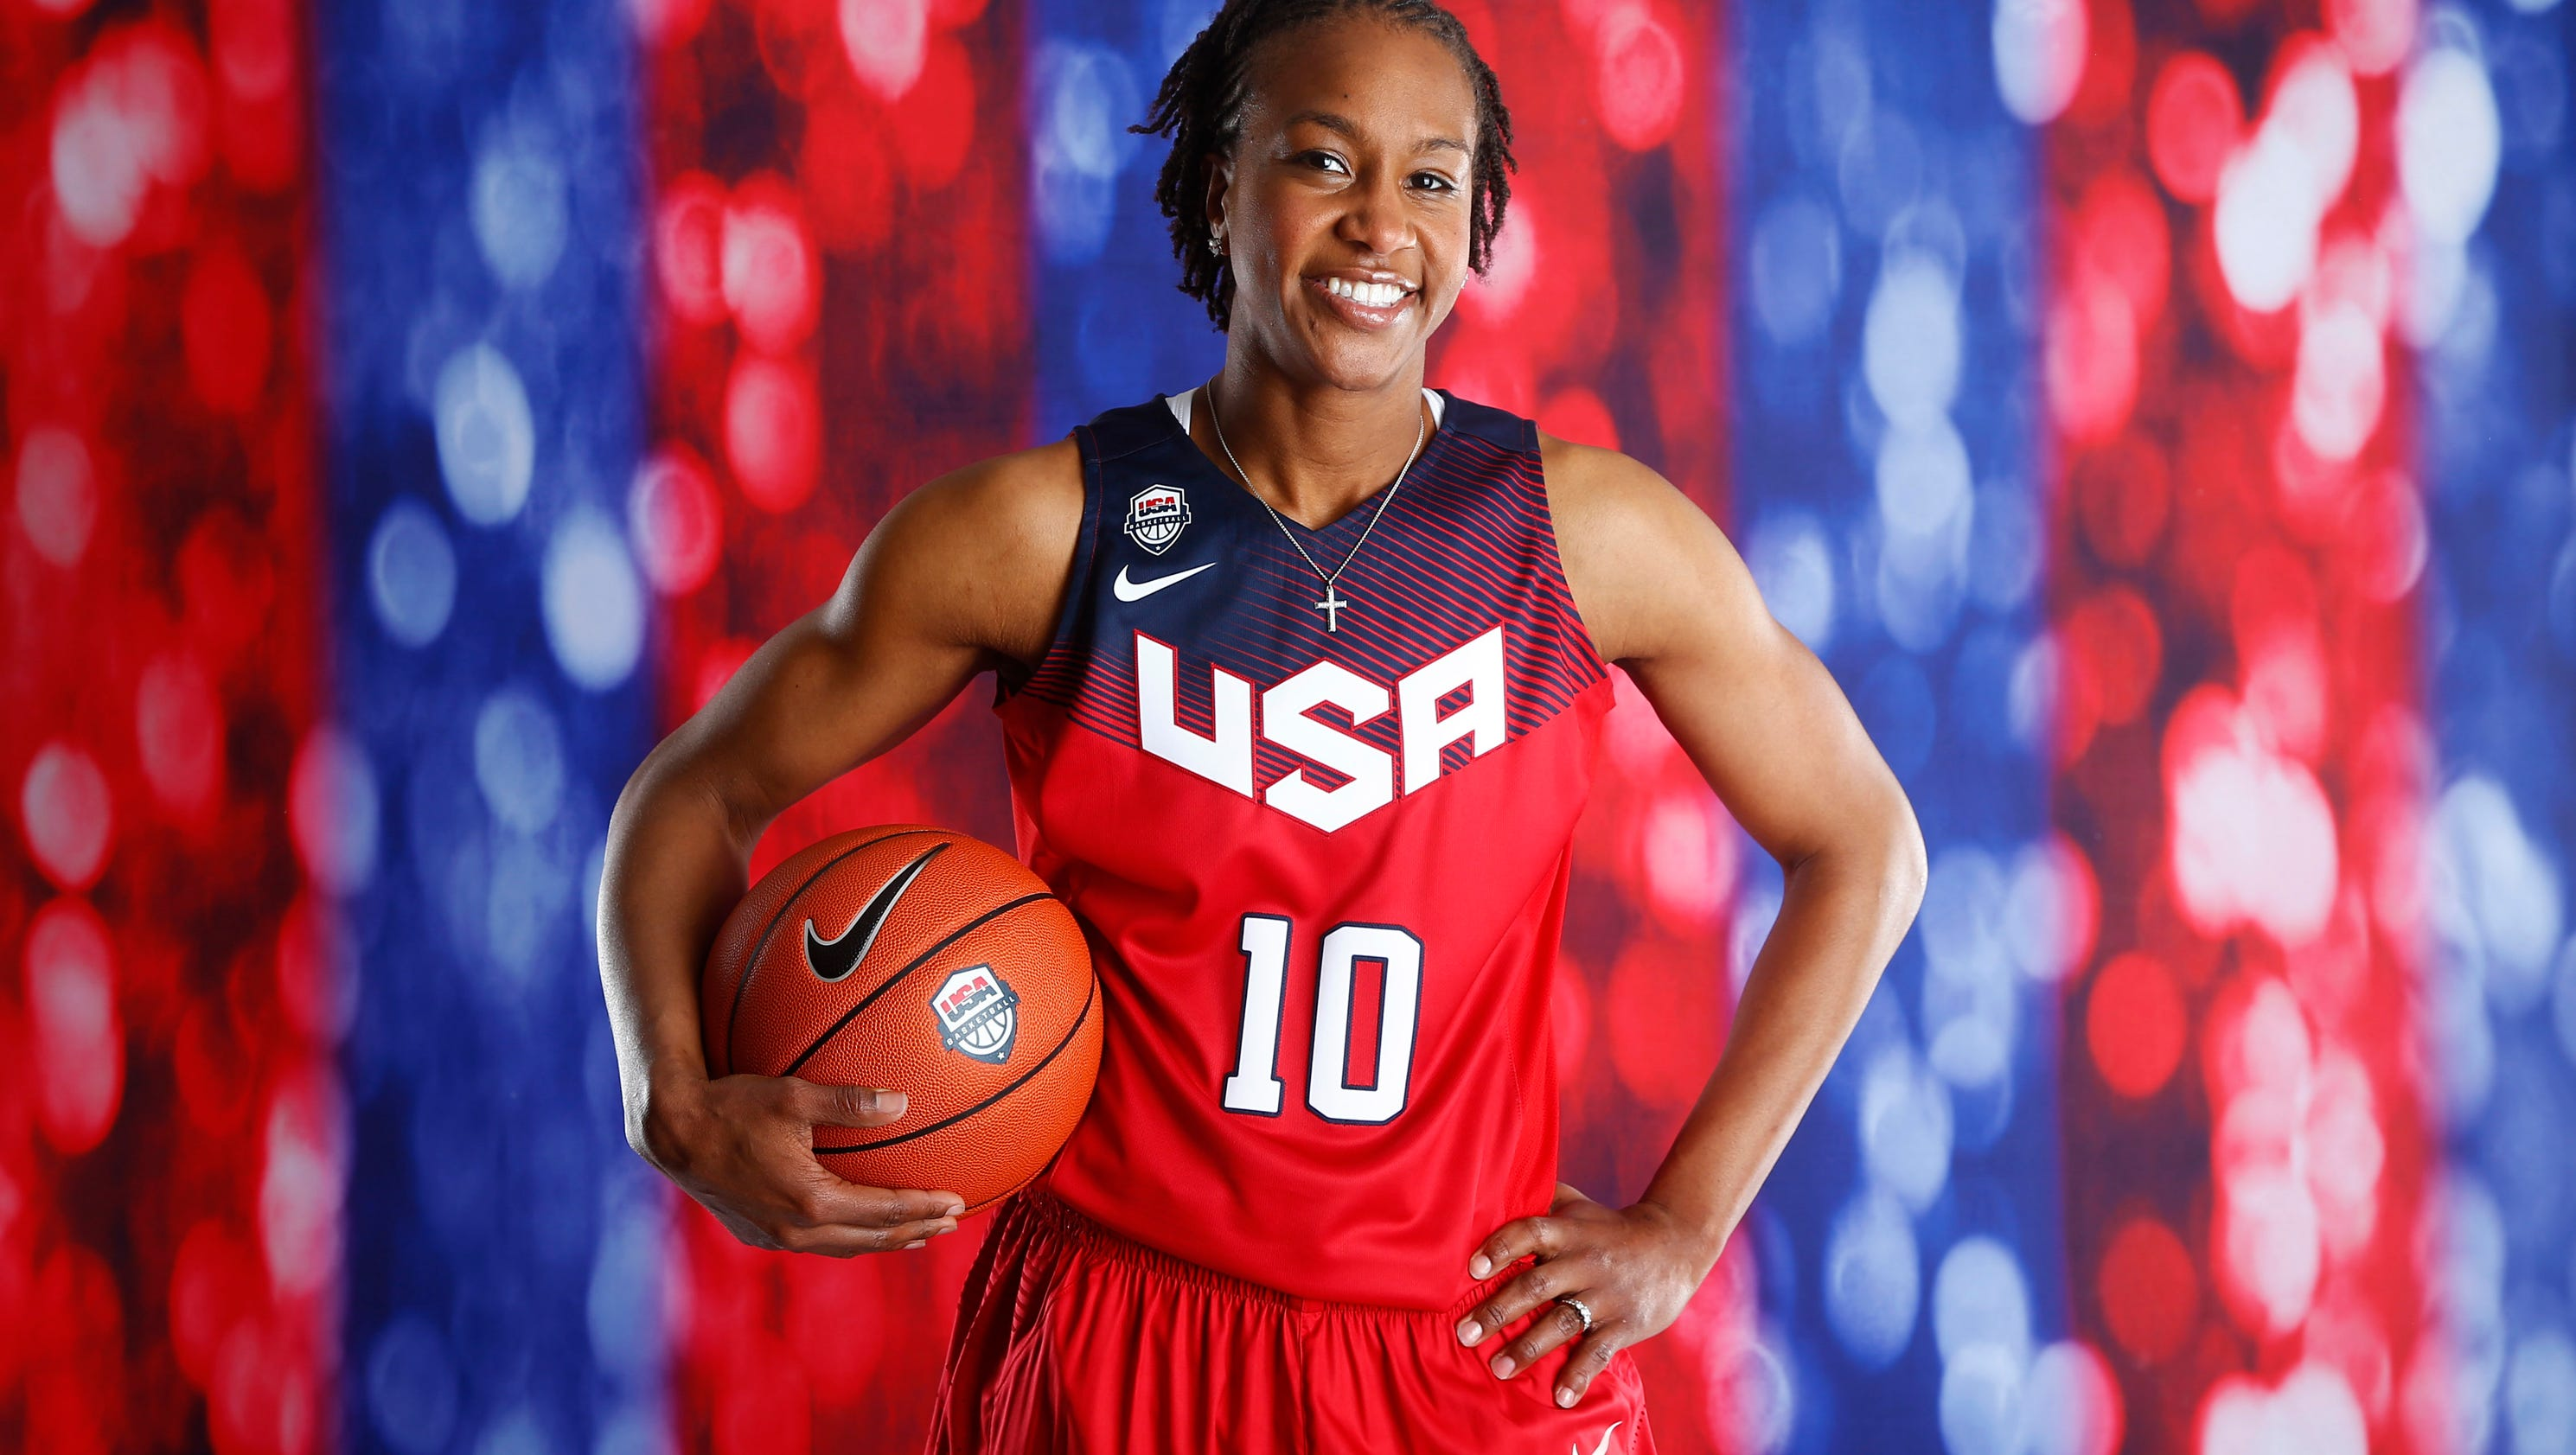 Toady 1 Tamika Catchings will ...